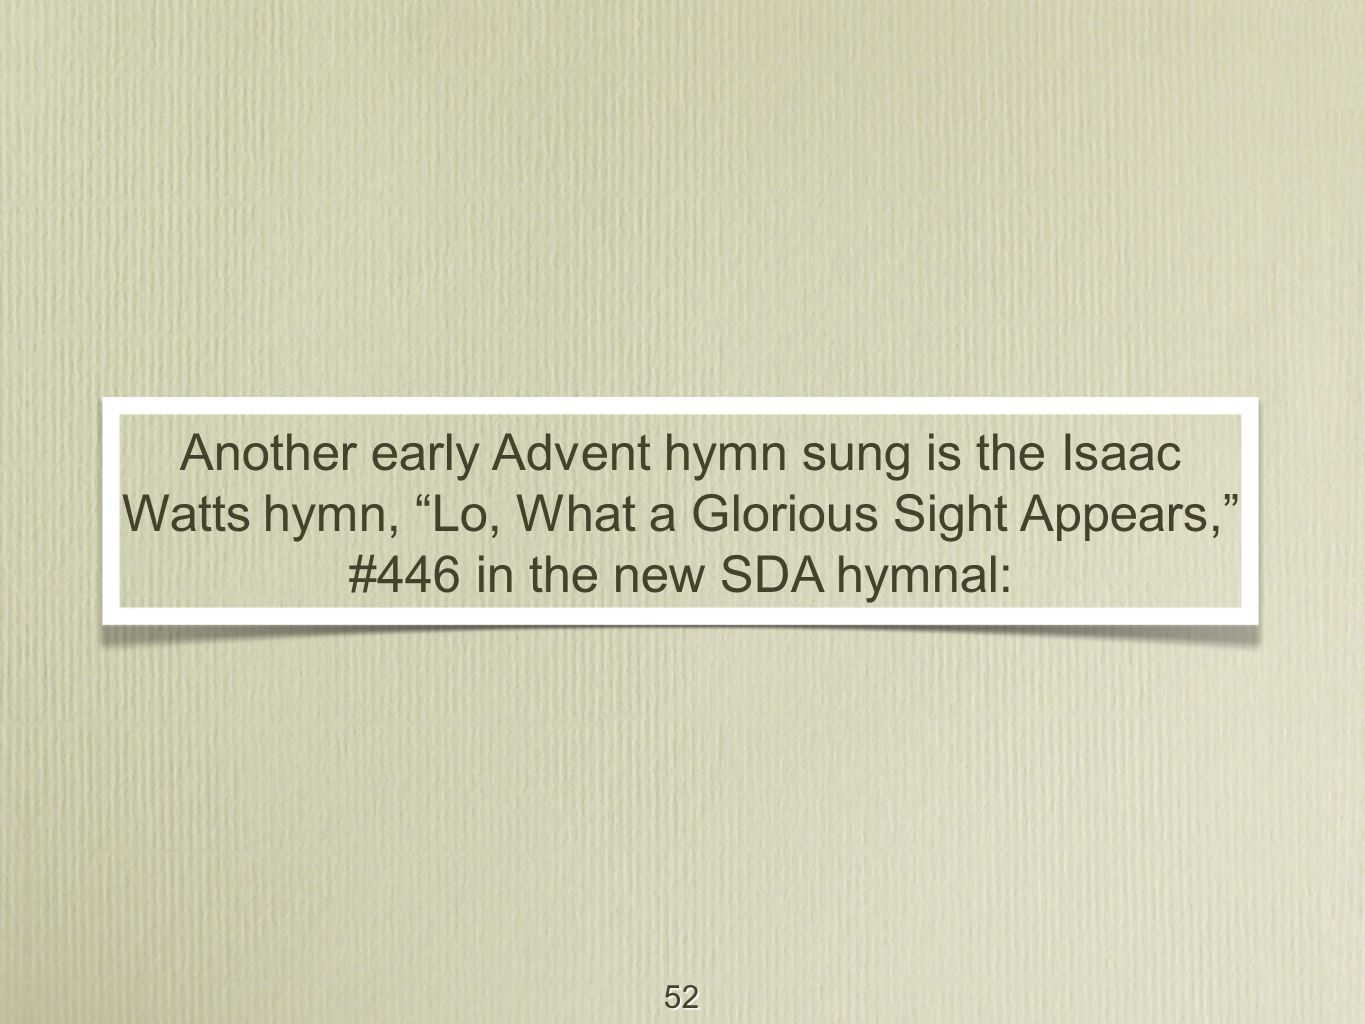 """52 Another early Advent hymn sung is the Isaac Watts hymn, """"Lo, What a Glorious Sight Appears,"""" #446 in the new SDA hymnal:"""